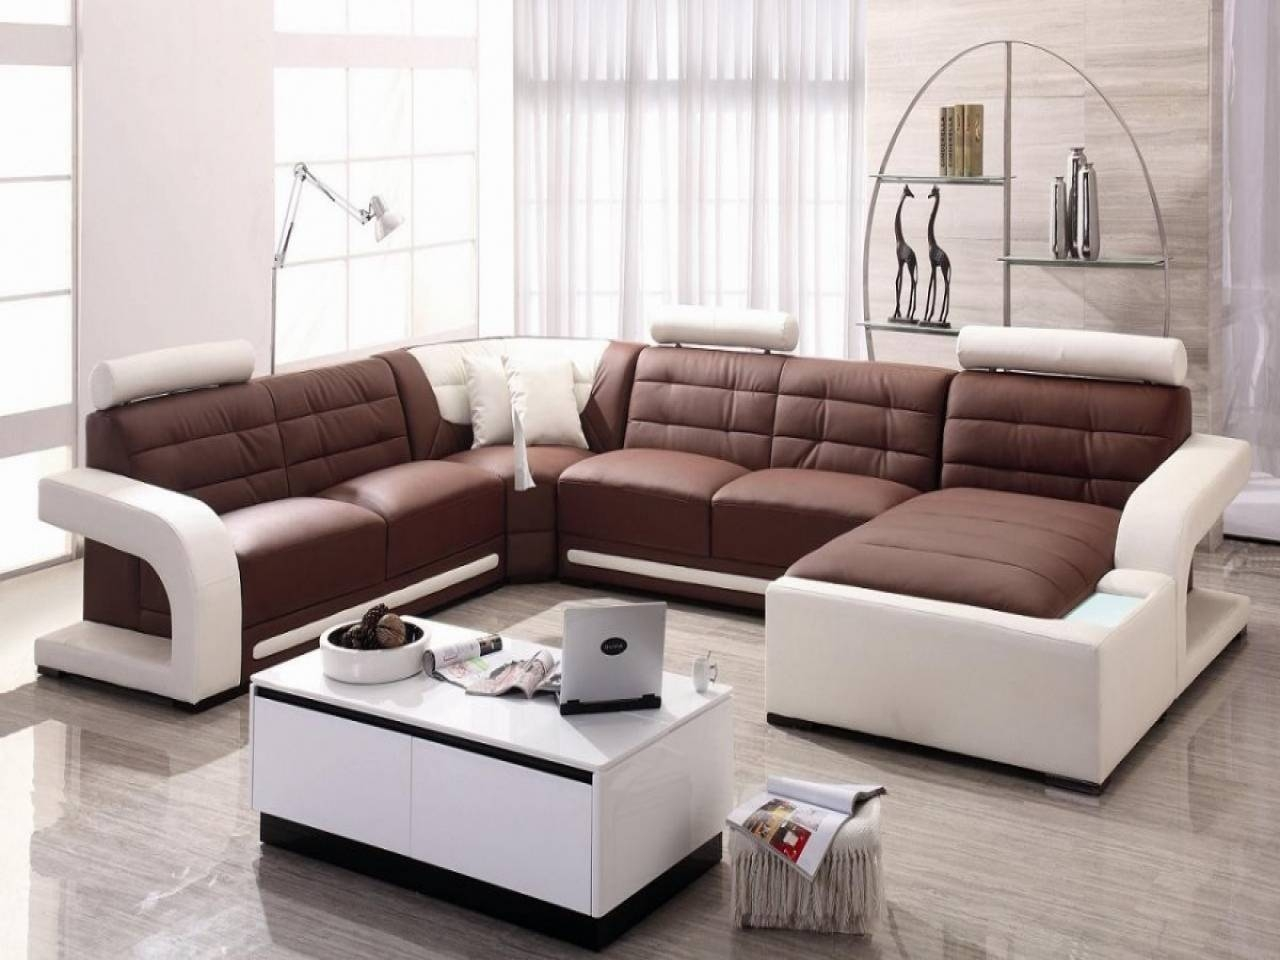 Furniture: Decoration Sectionals For Sale In Modern Room Design inside Modern Sofas Sectionals (Image 10 of 30)